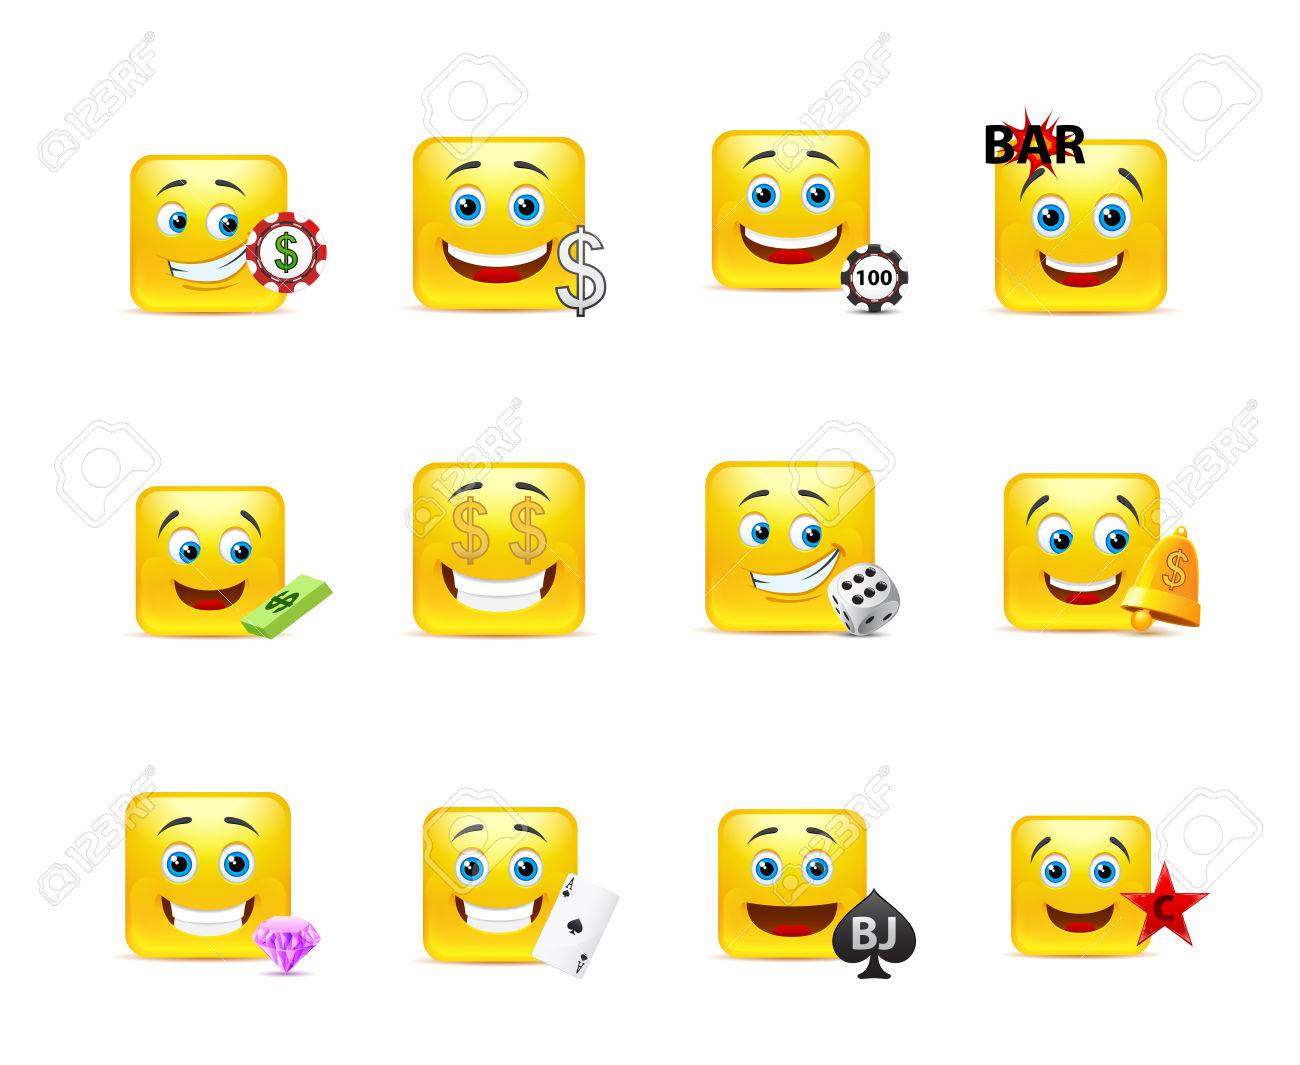 Gambling smiley faces how to win at the casino